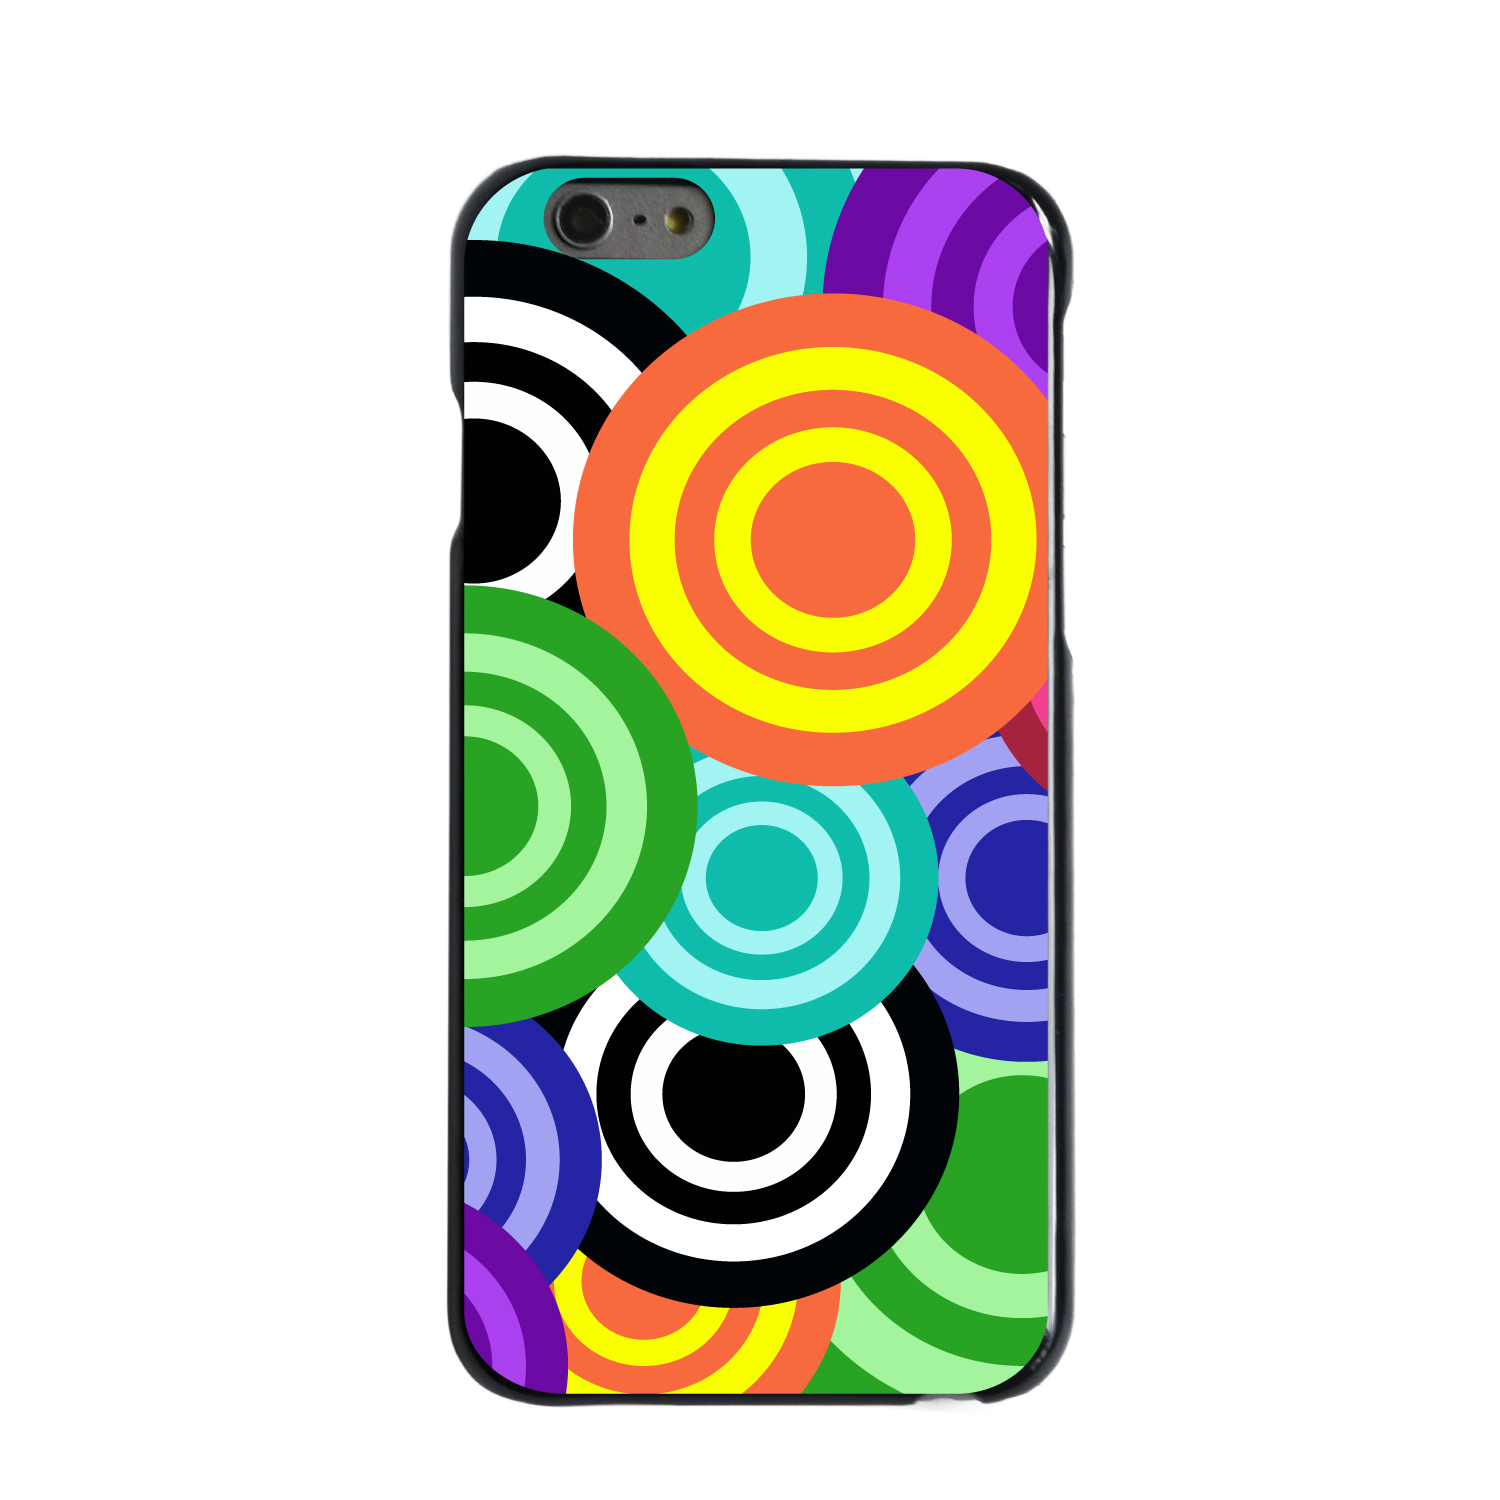 "CUSTOM Black Hard Plastic Snap-On Case for Apple iPhone 6 PLUS / 6S PLUS (5.5"" Screen) - Multi Color Swirls"